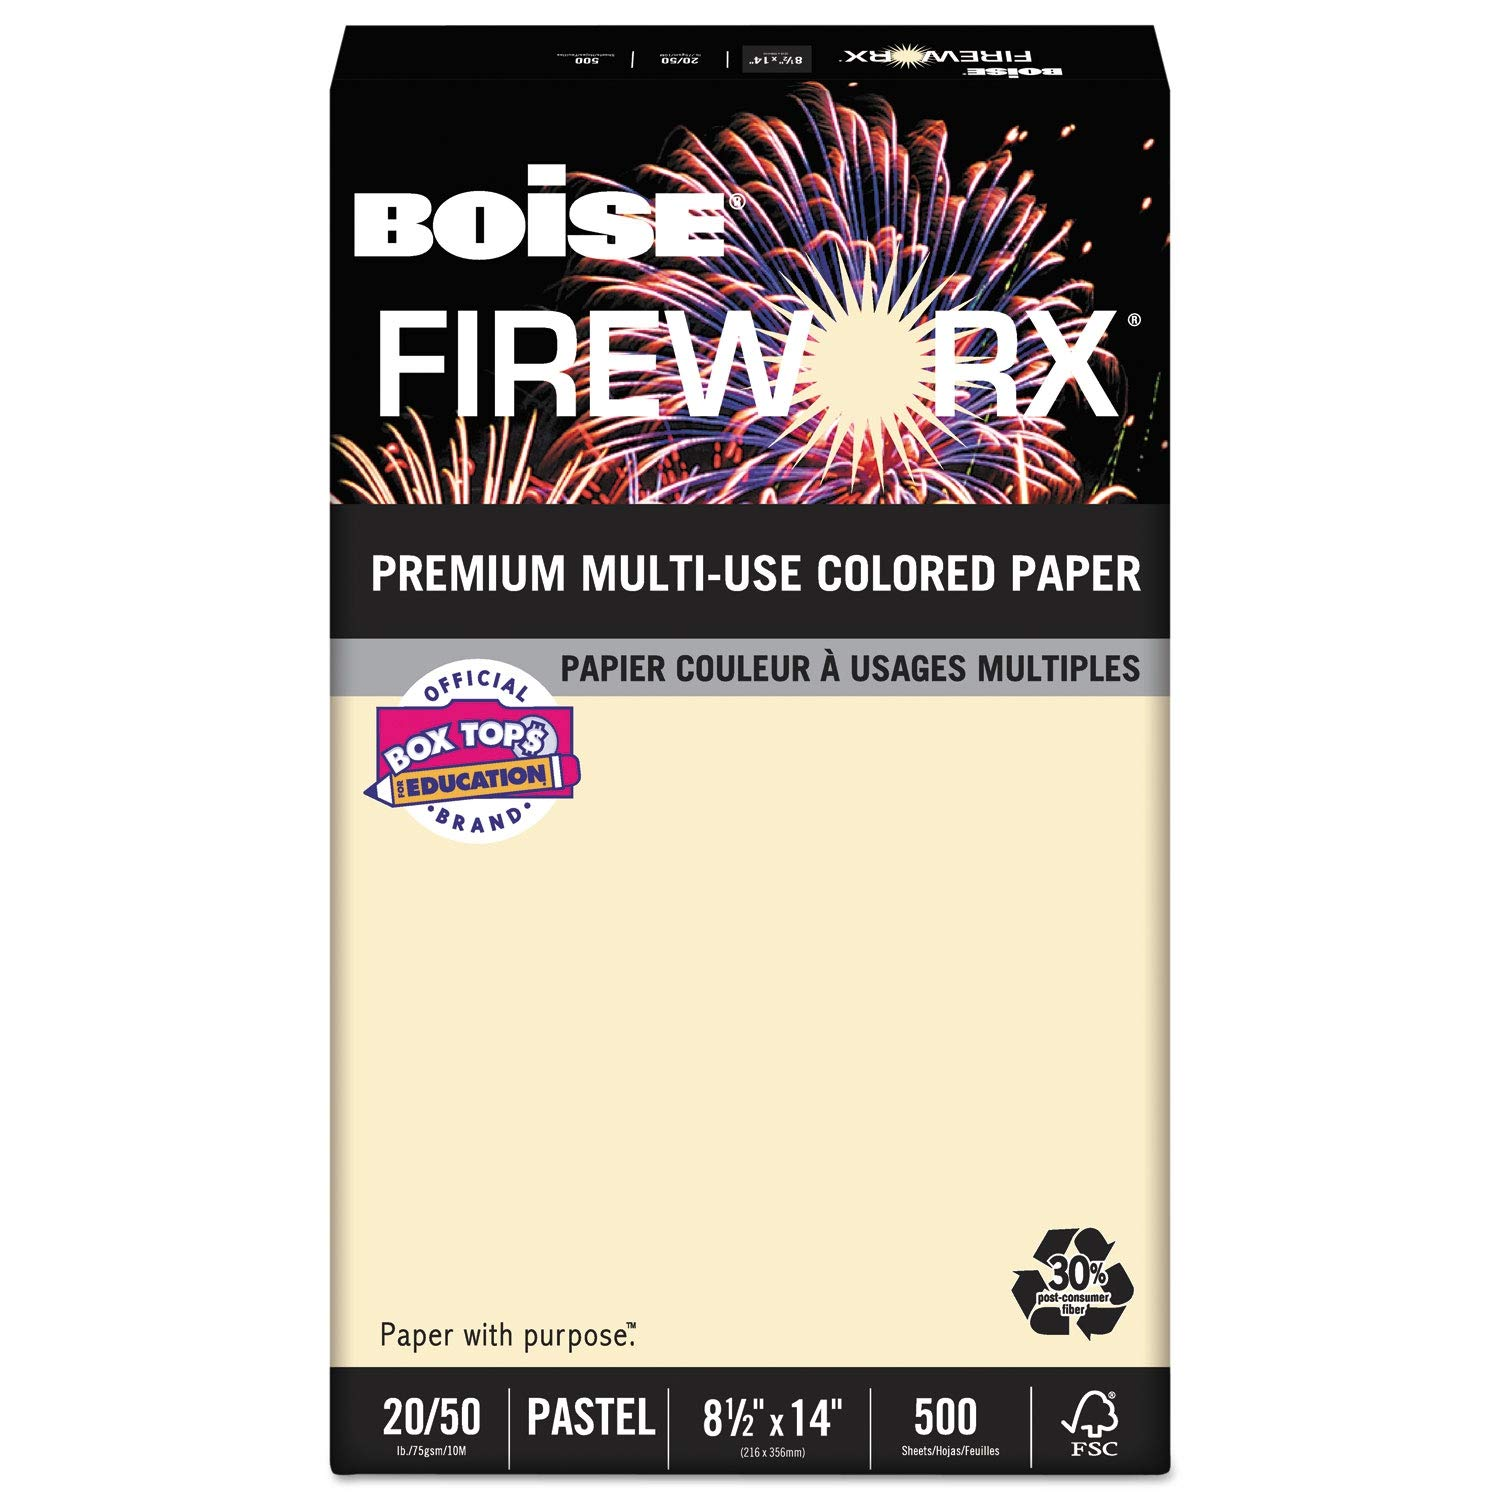 Boise FIREWORX Colored Paper, 20lb, 8-1/2 x 14, Flashing Ivory, 500 Sheets/Ream - MP2204IY, (Pack of 2)